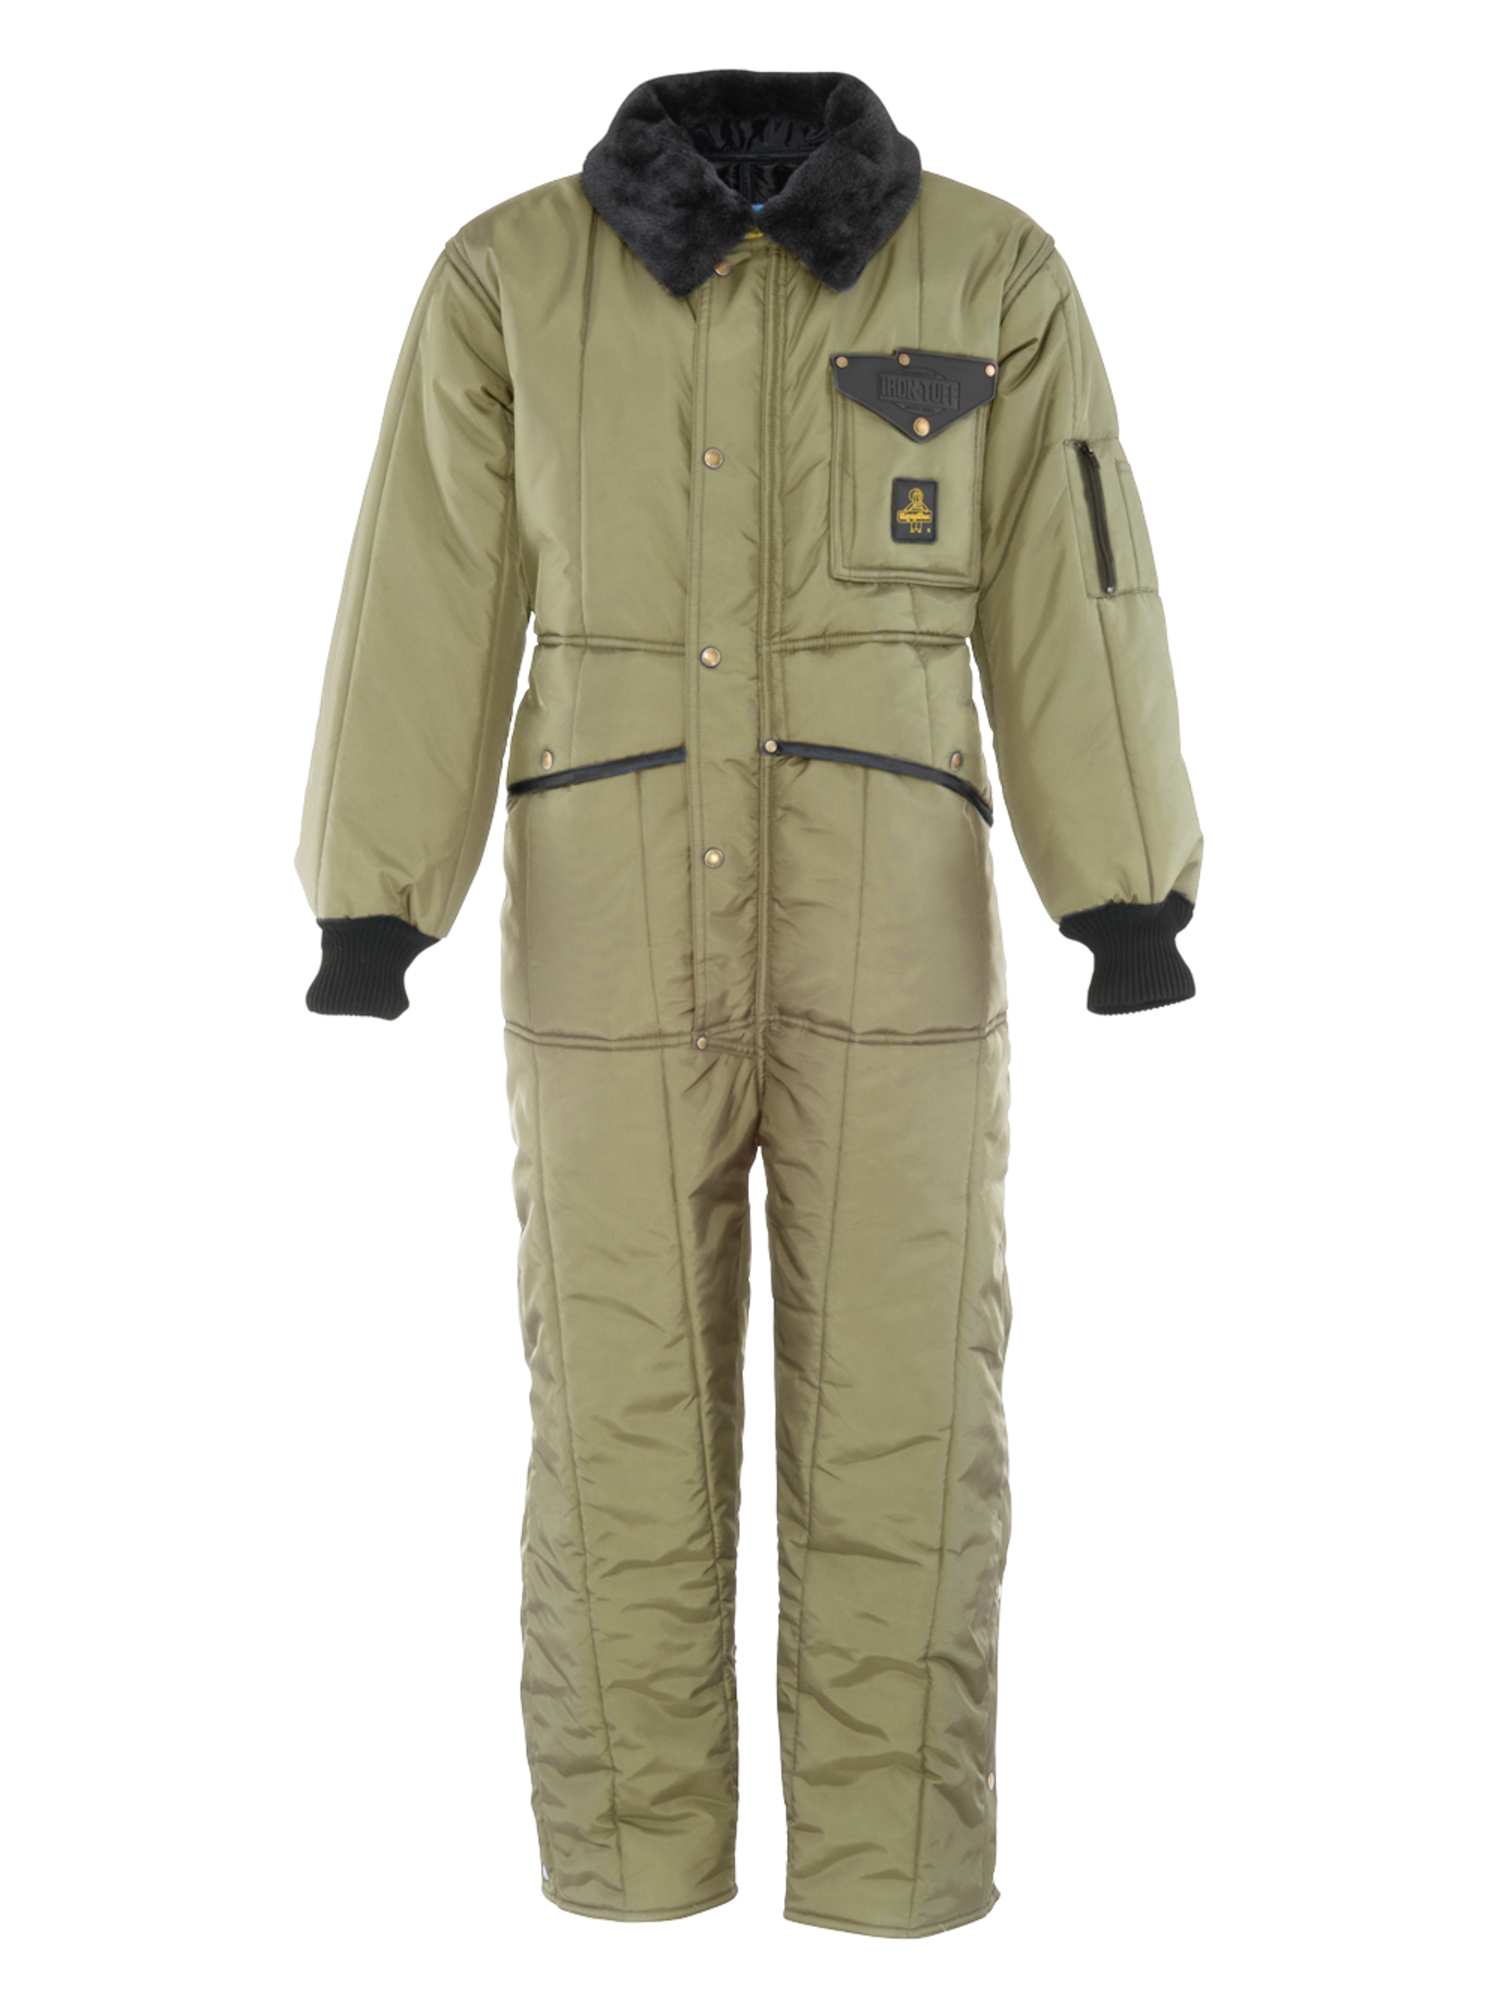 RefrigiWear Men's Iron-Tuff Insulated Coveralls -50 Extreme Cold Suit by RefrigiWear